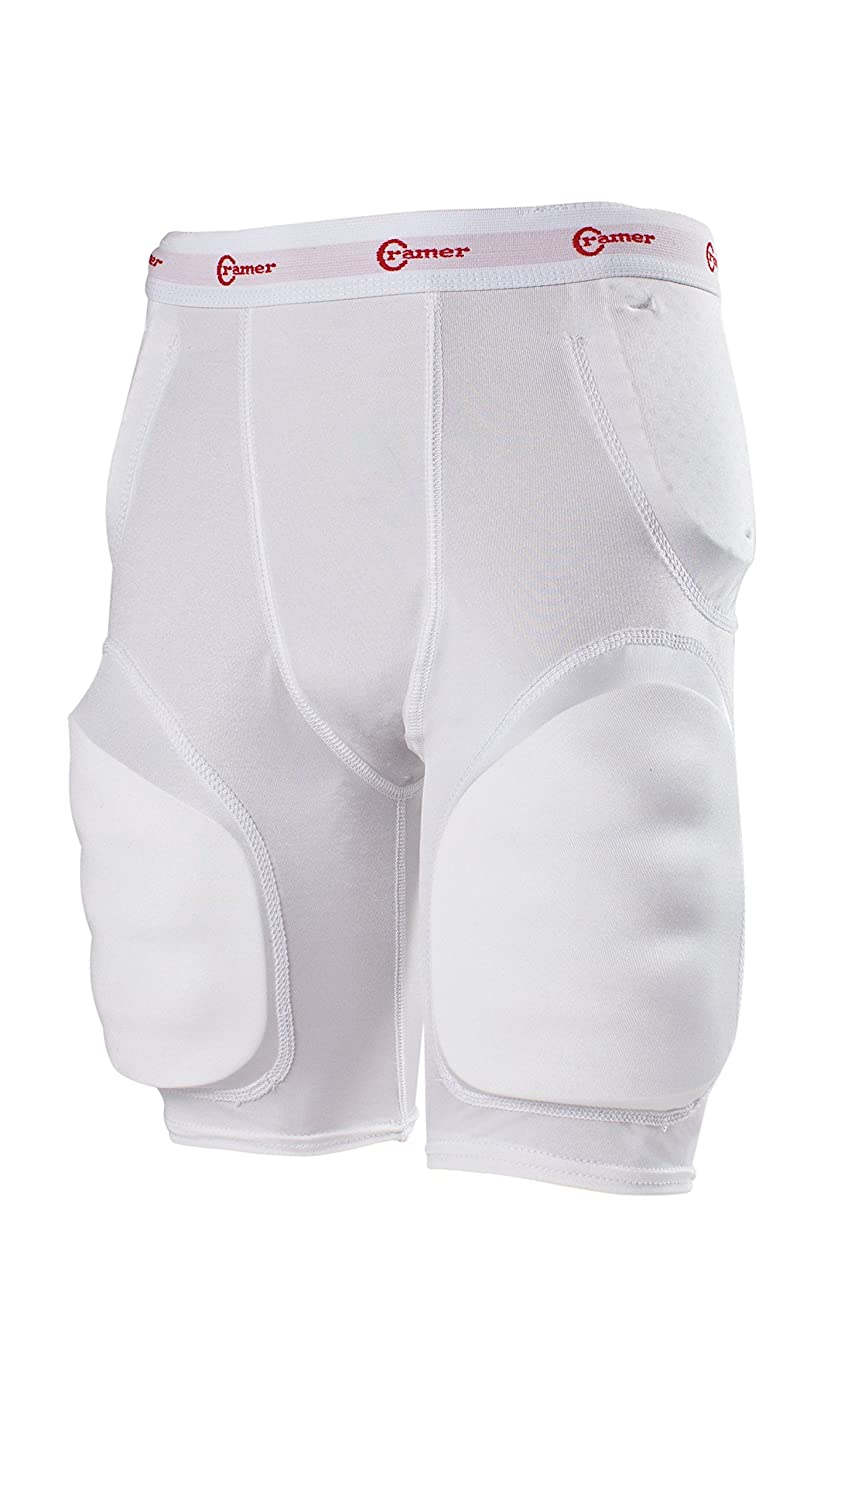 Cramer Classic 5-Pad Football Girdle With Hip, Tailbone and Thigh Pads, Integrated Girdle, Compression Football Gear, Football Equipment, Football Pads, Protective Gear for Football, Assorted Sizes 1502HTPT S Wht-P